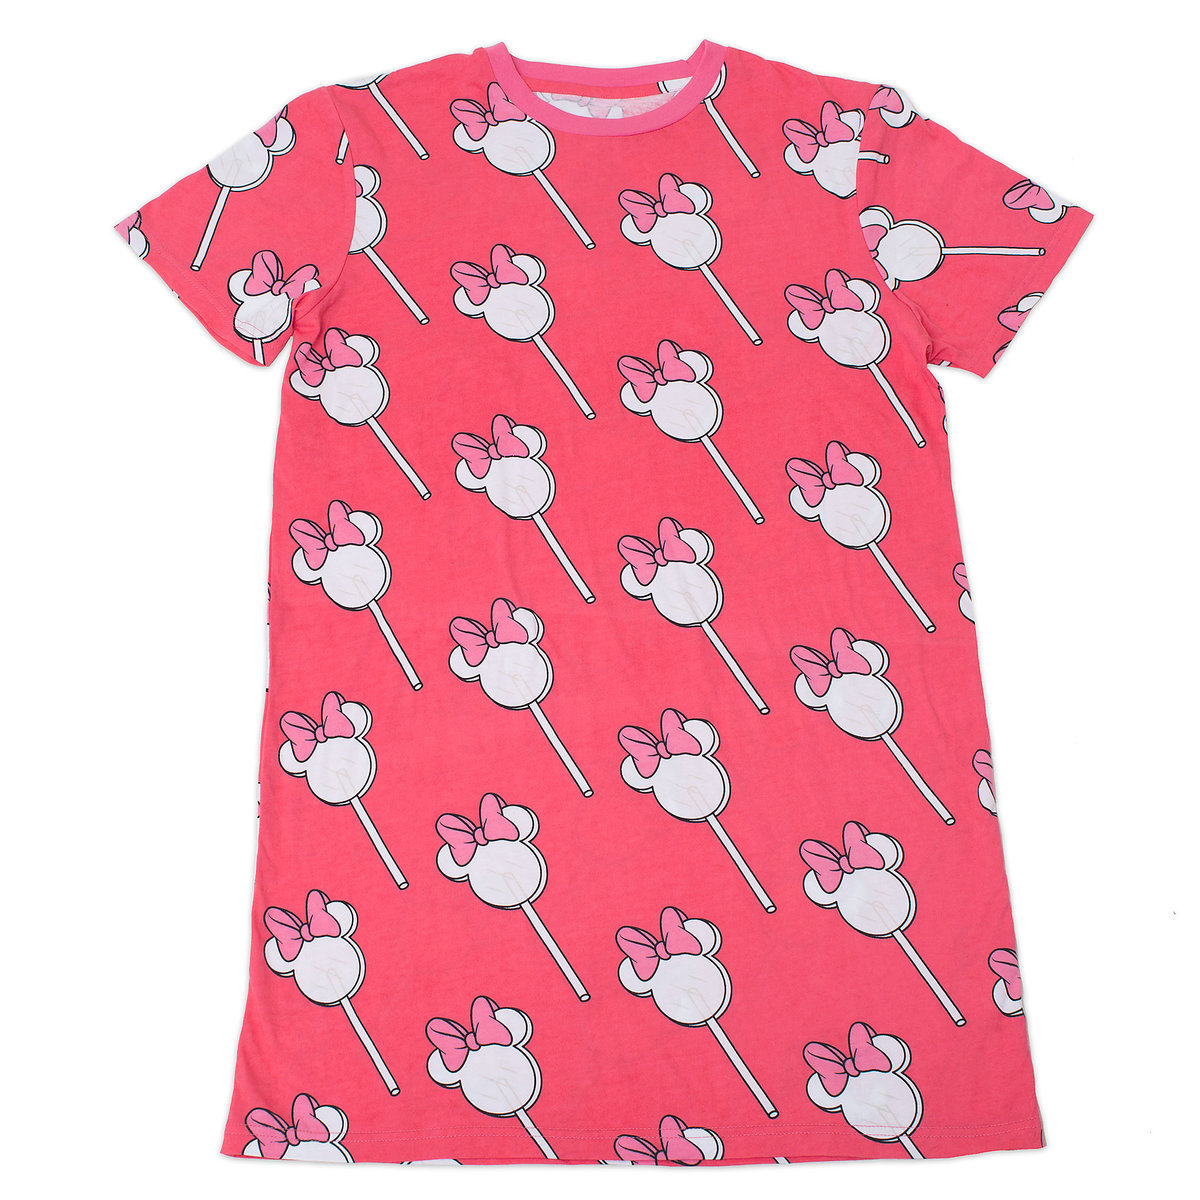 4f1f785b8127 Product Image of Minnie Mouse Lollipop T-Shirt Dress for Adults by  Cakeworthy # 1